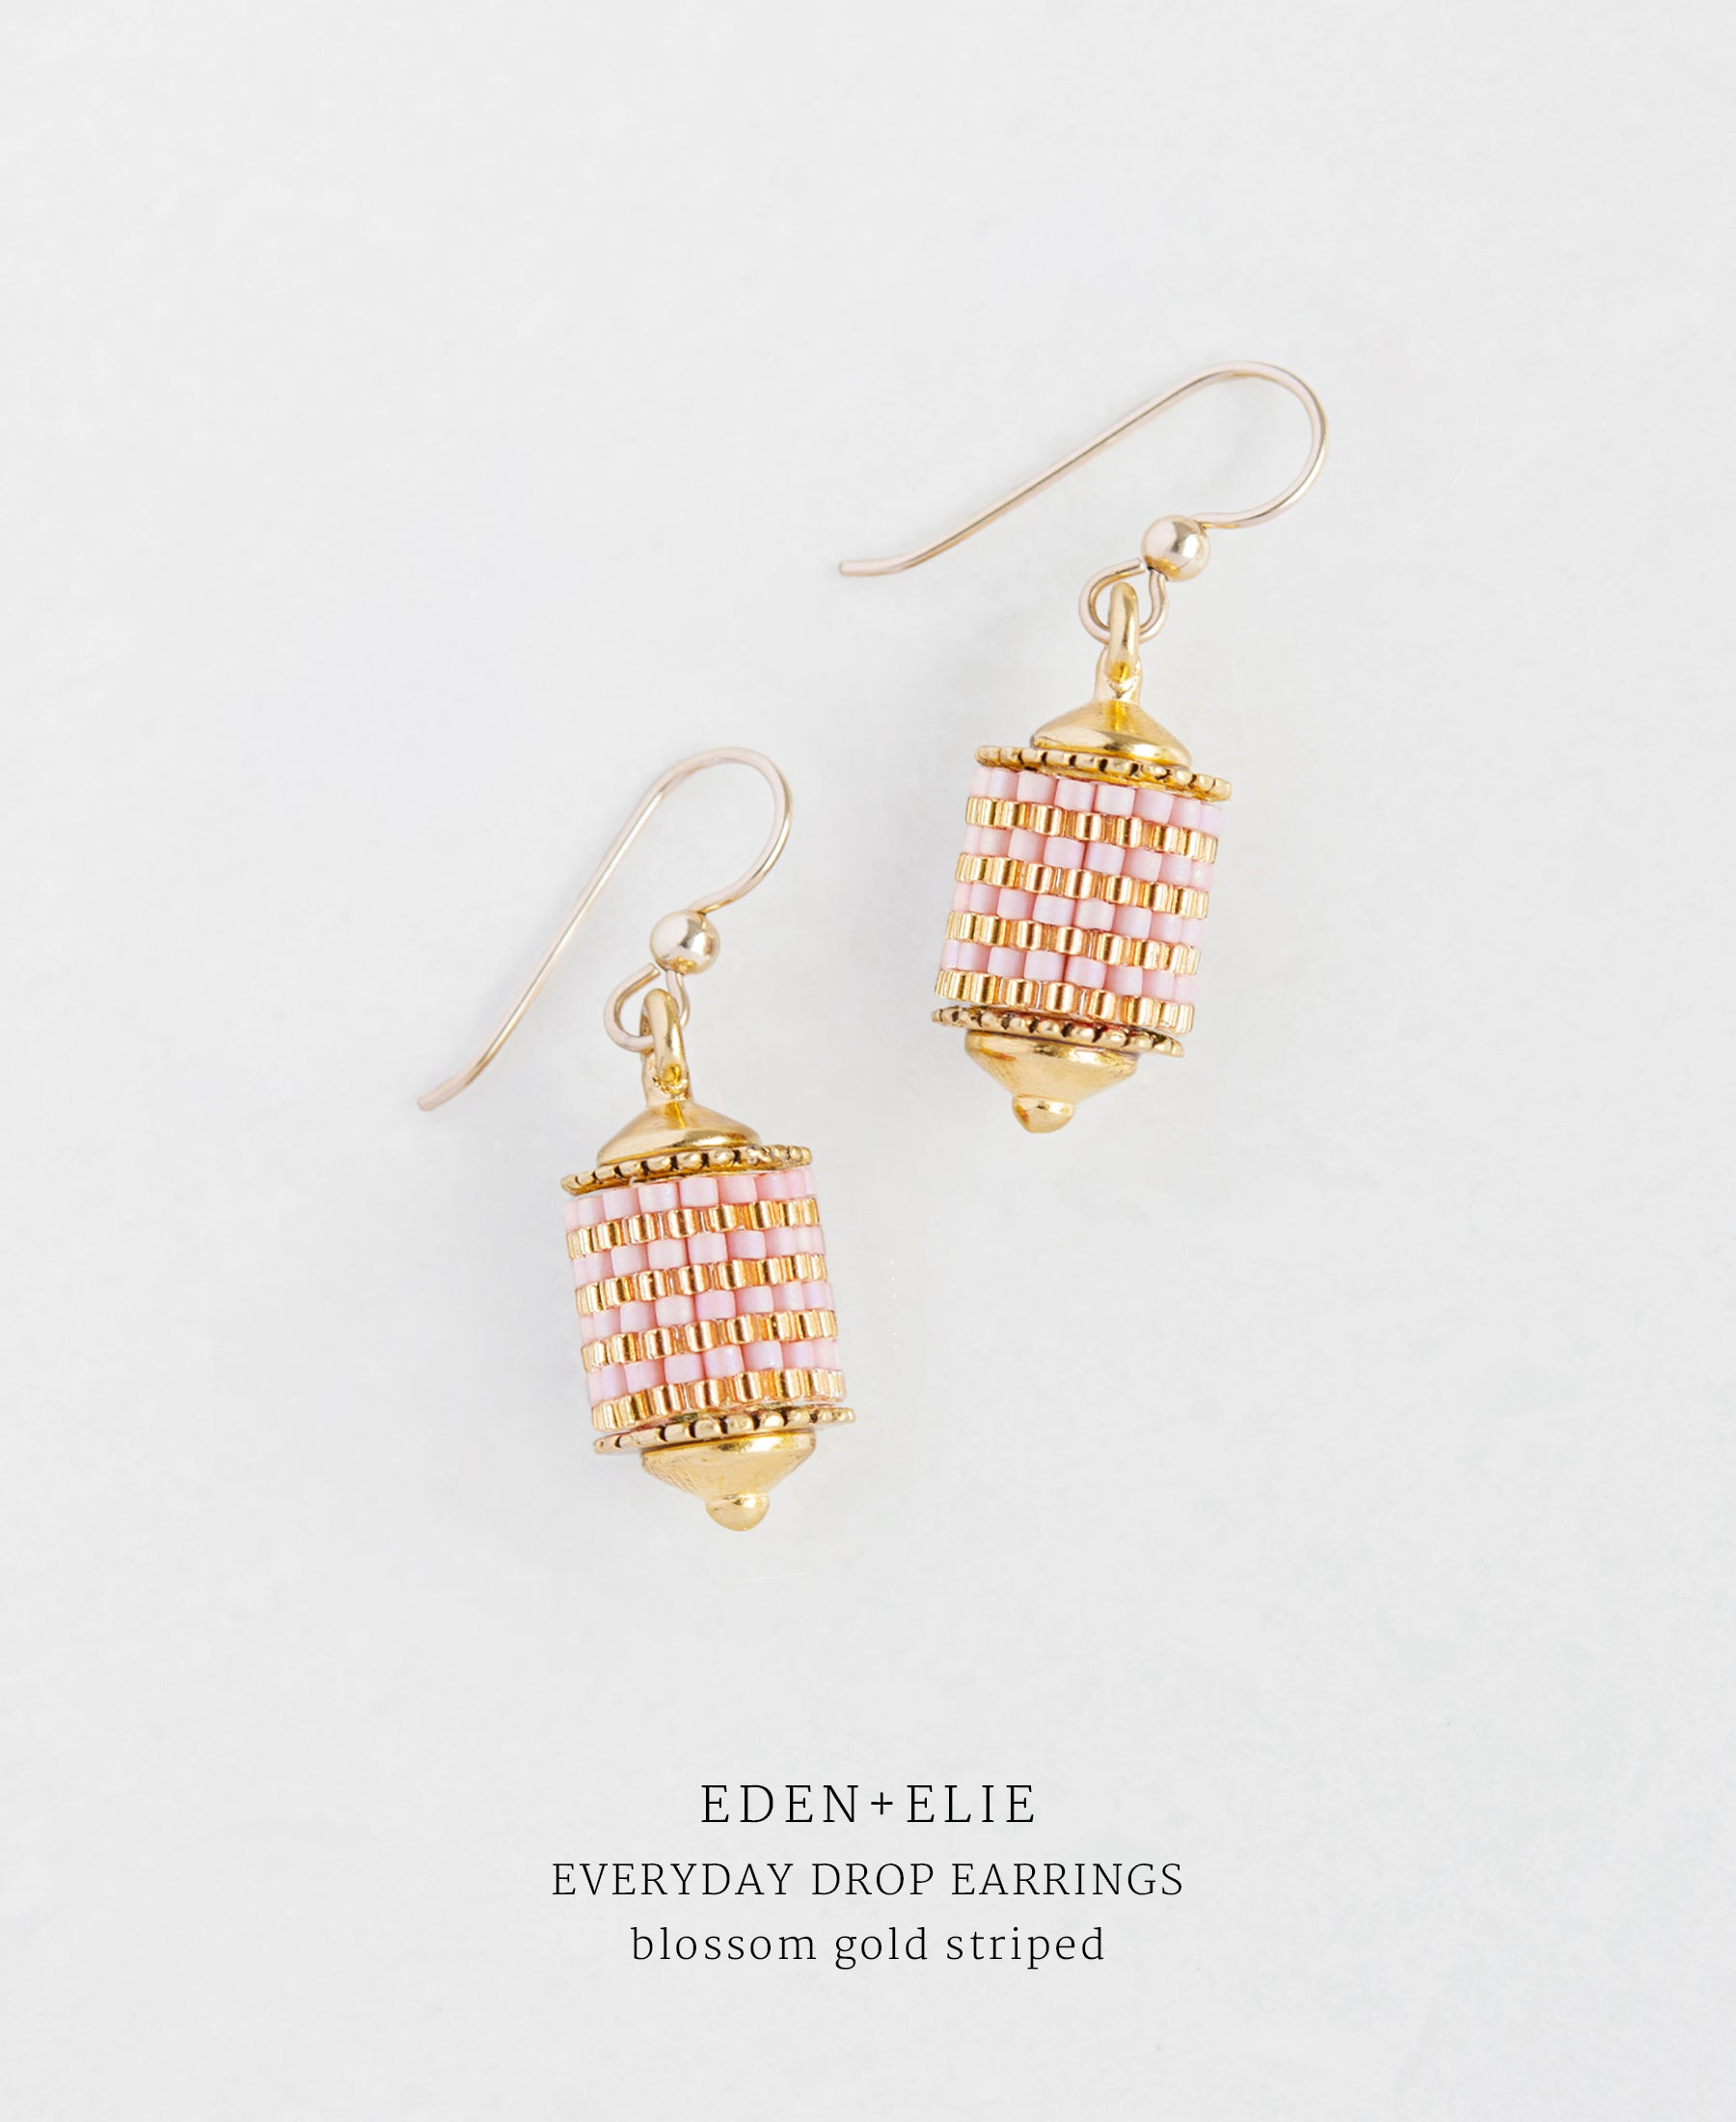 EDEN + ELIE Everyday drop earrings - blossom gold striped